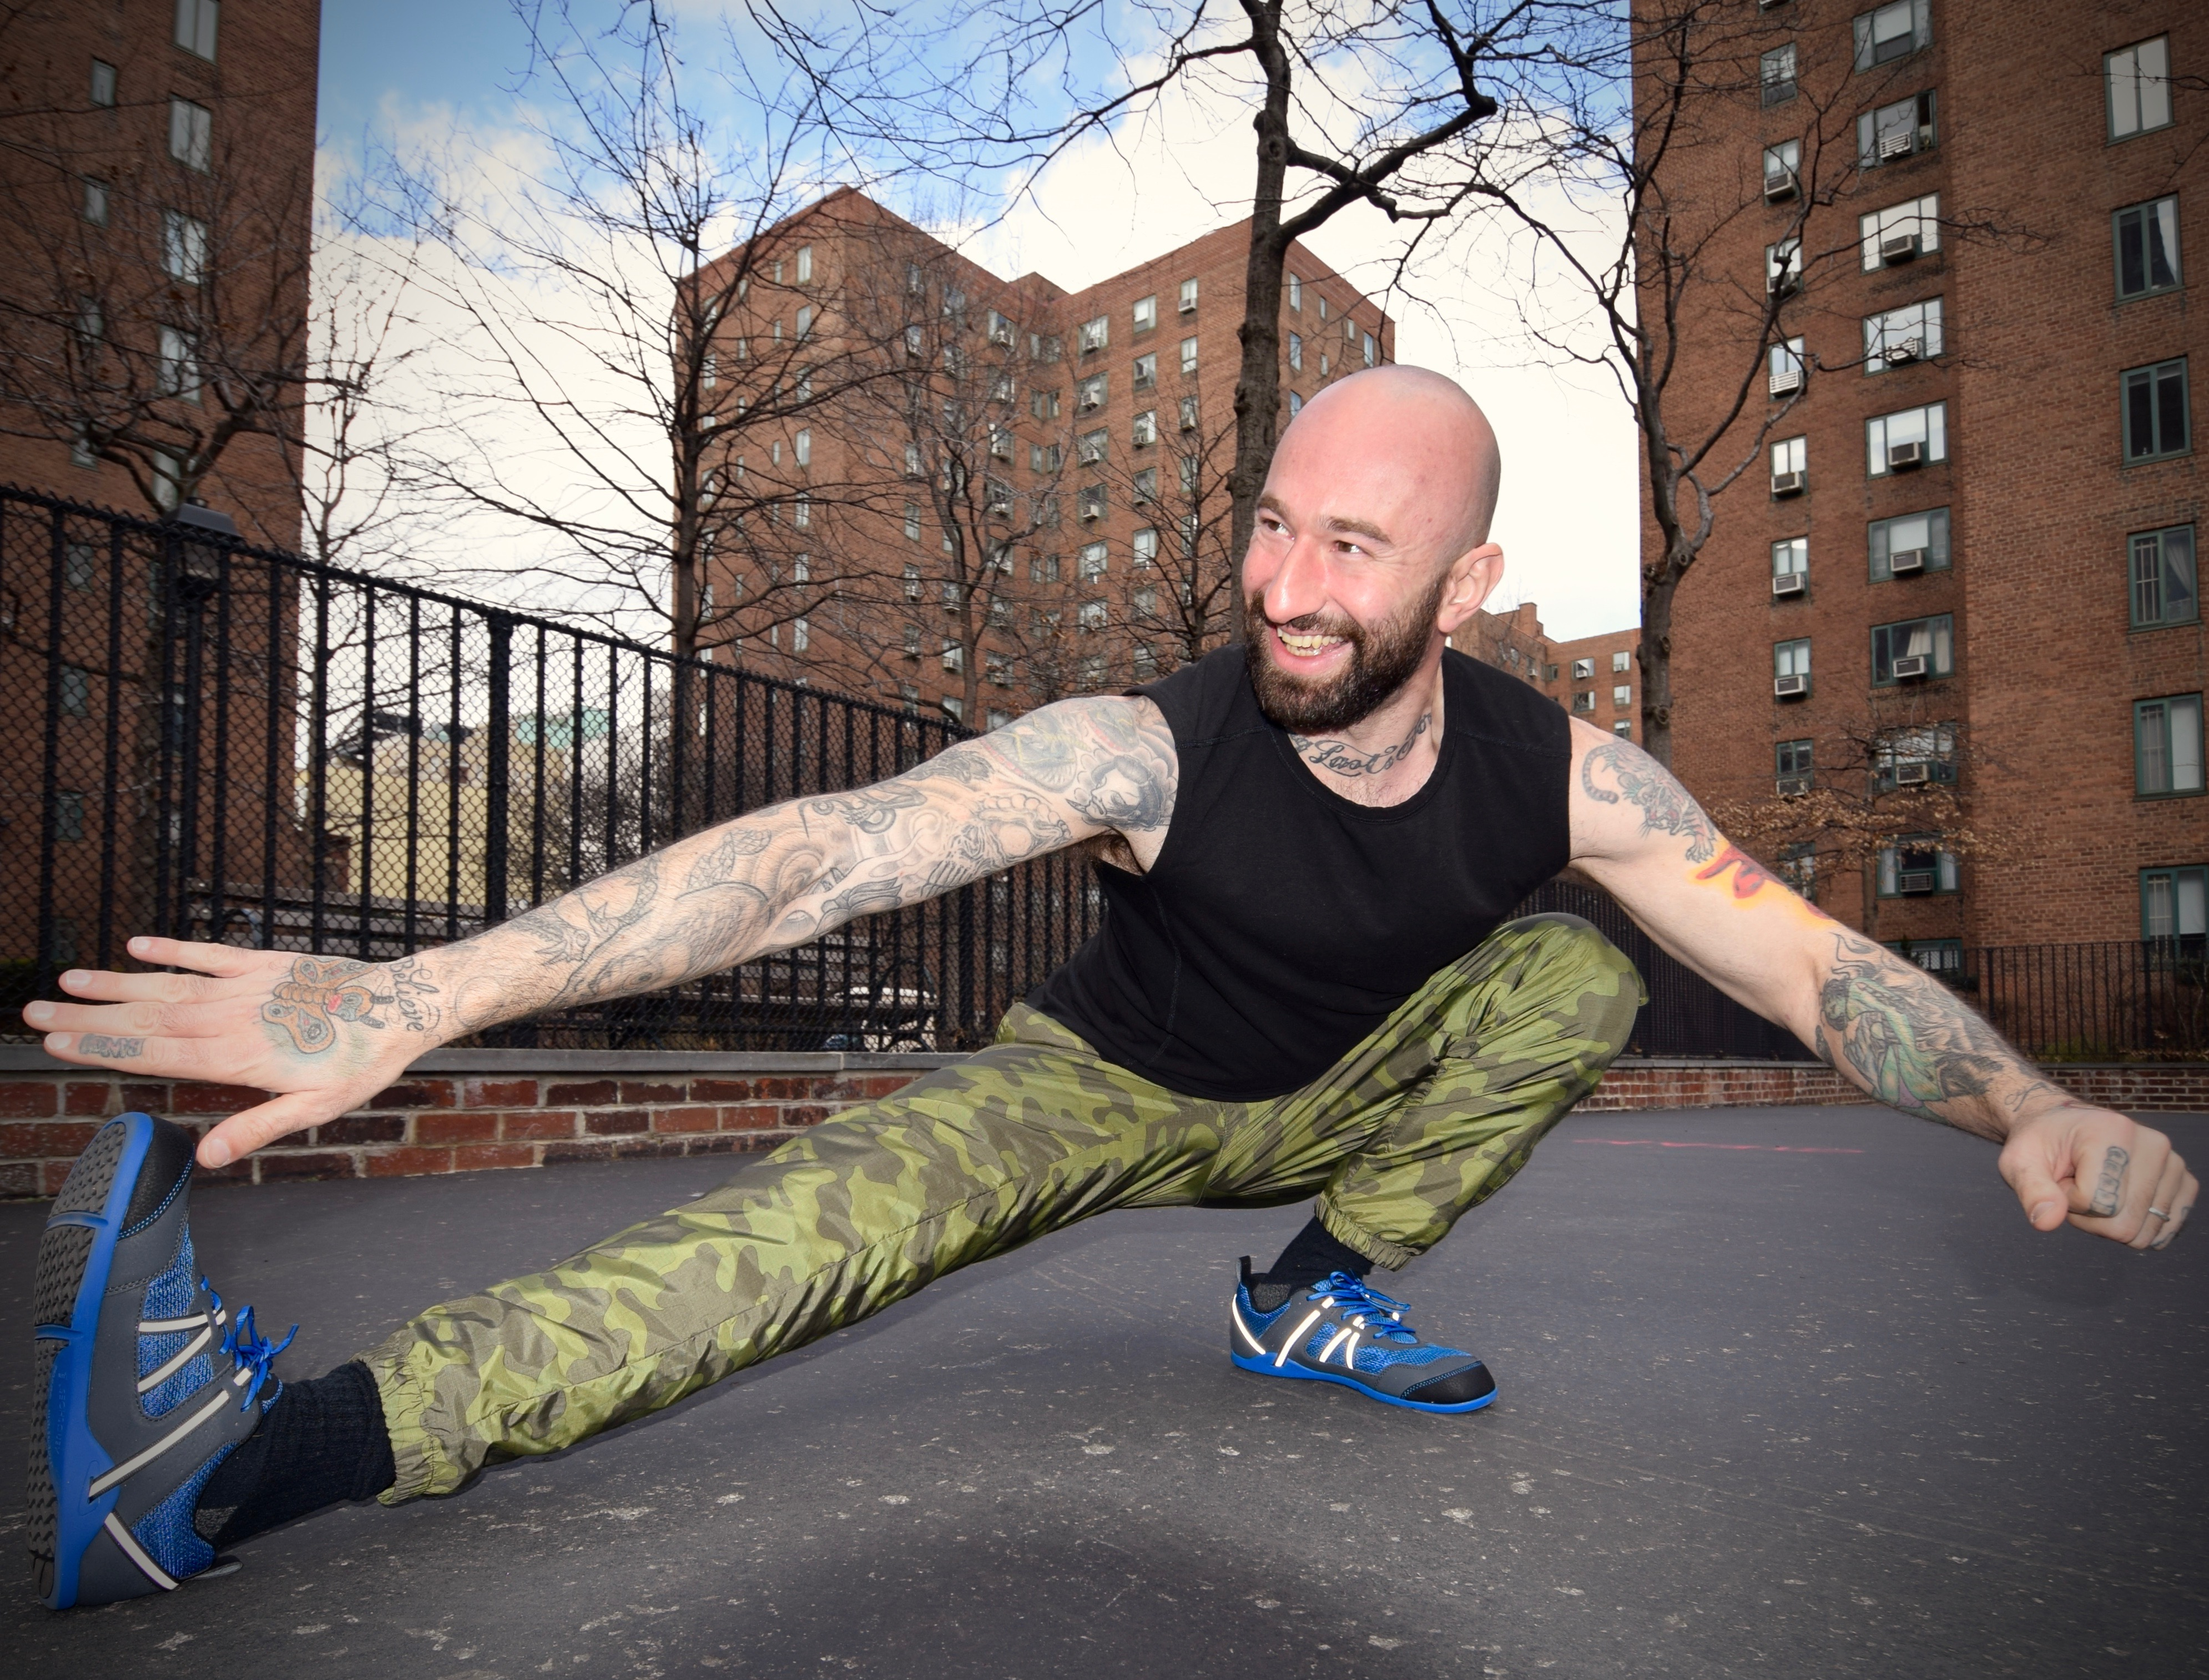 Five Calisthenics Leg Exercises for Building Strength and Muscle by